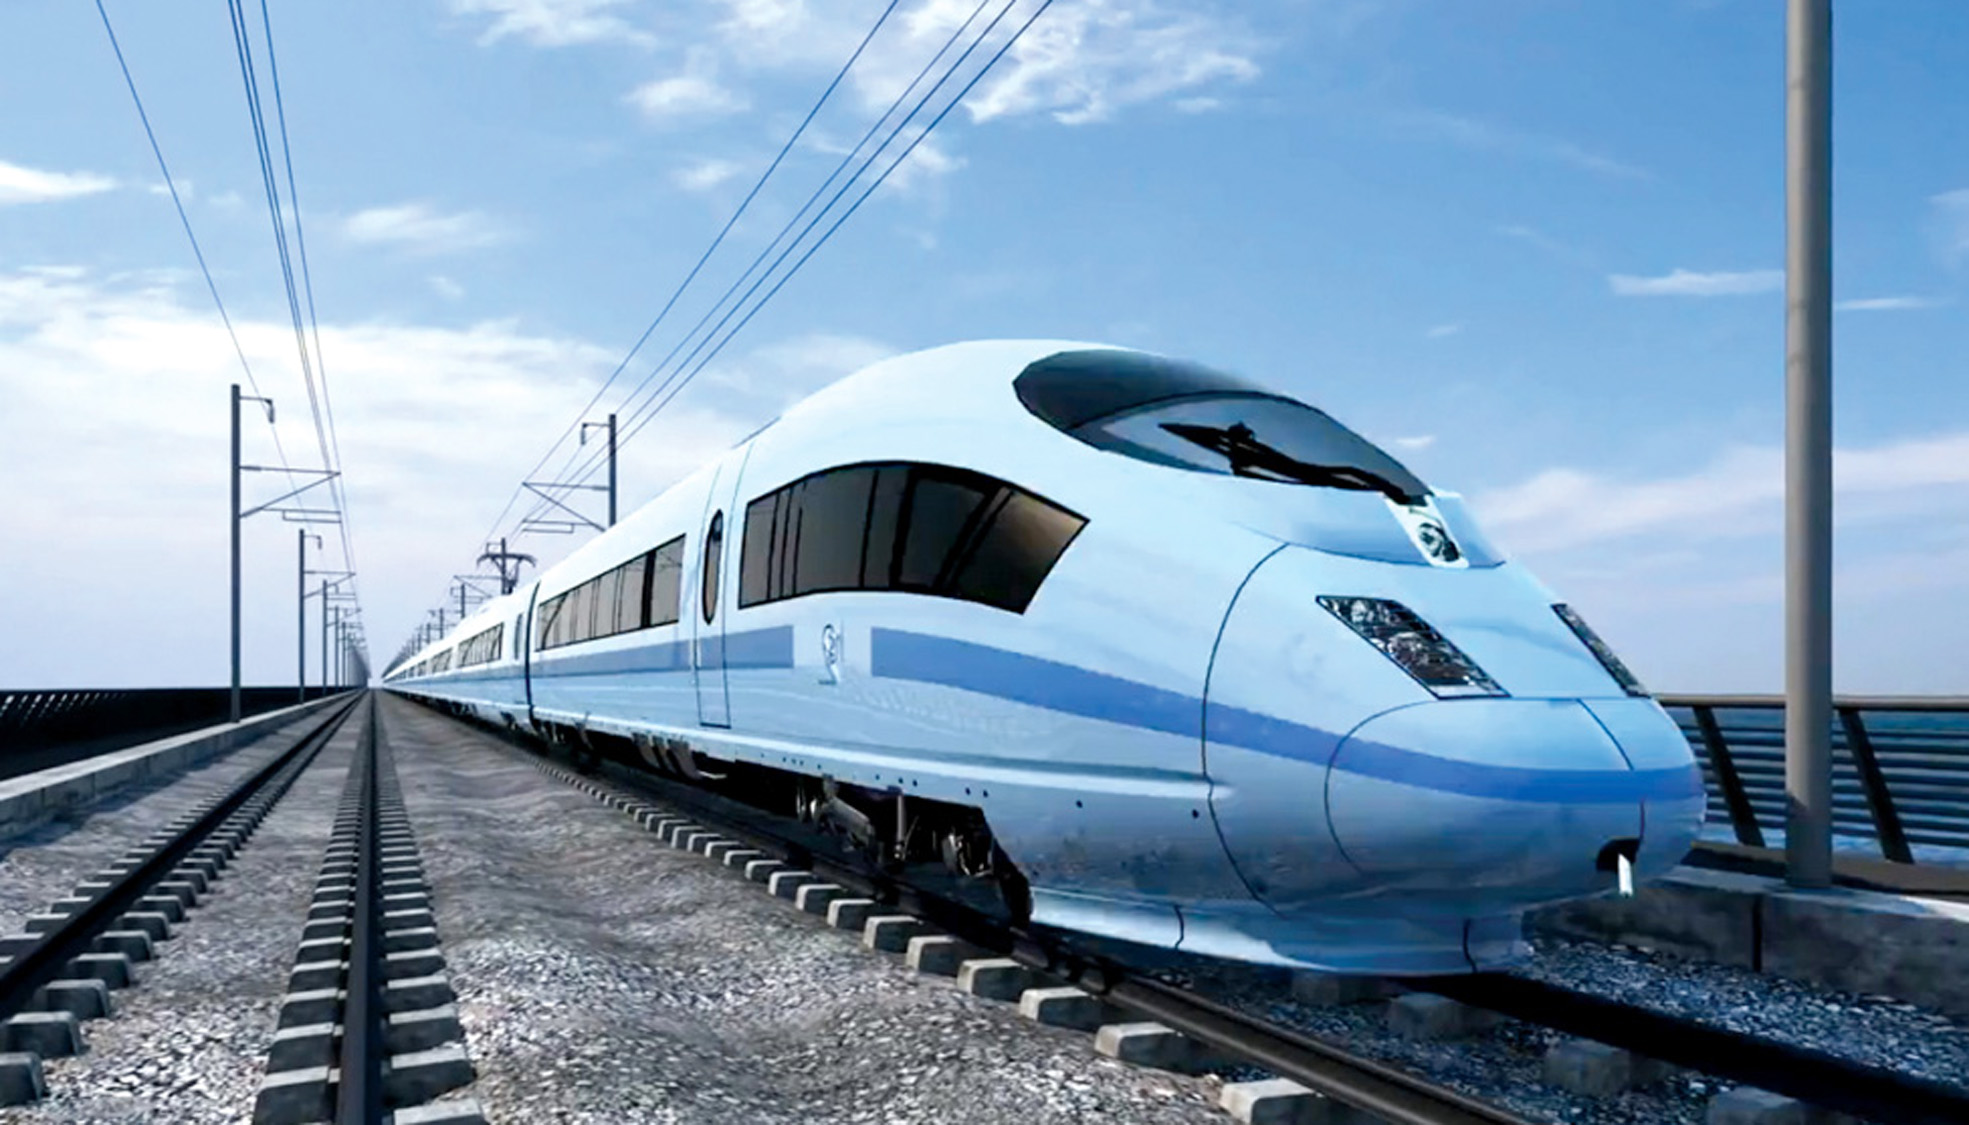 What the proposed high-speed rail link HS2 would look like